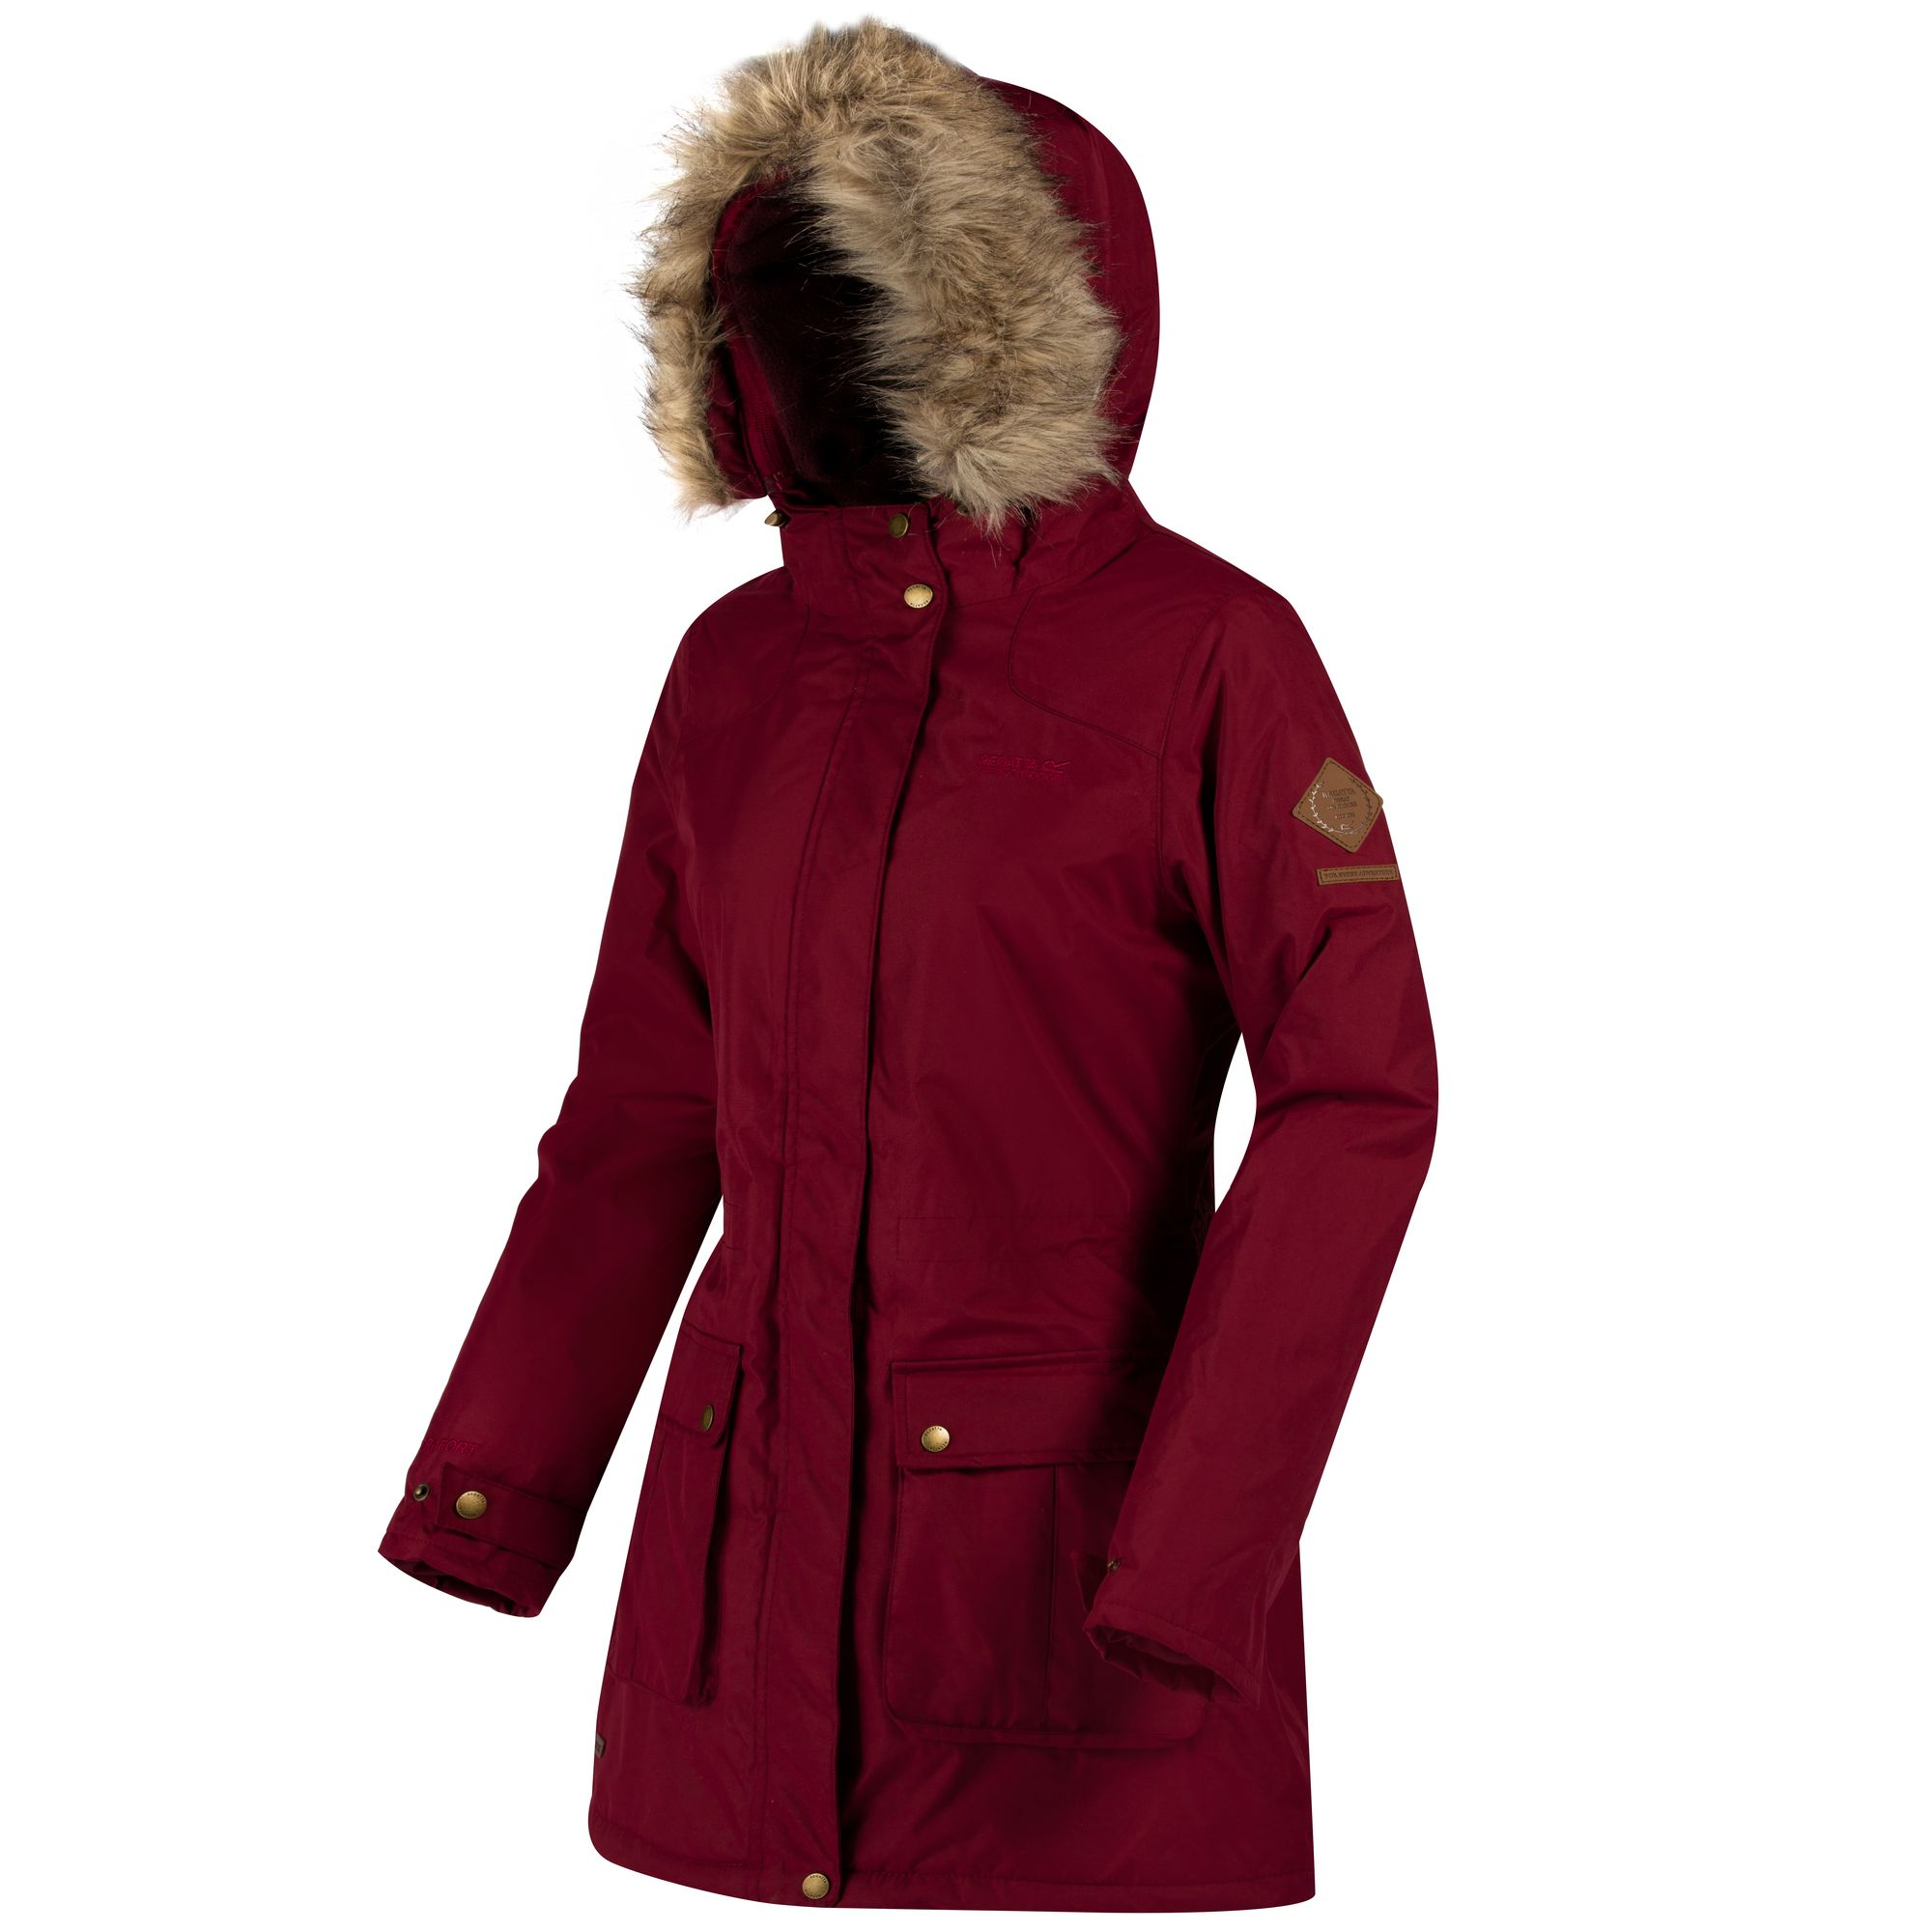 coat lined barn flannel to for additional barns adirondack zoom jackets swipe views product scl womens pinch